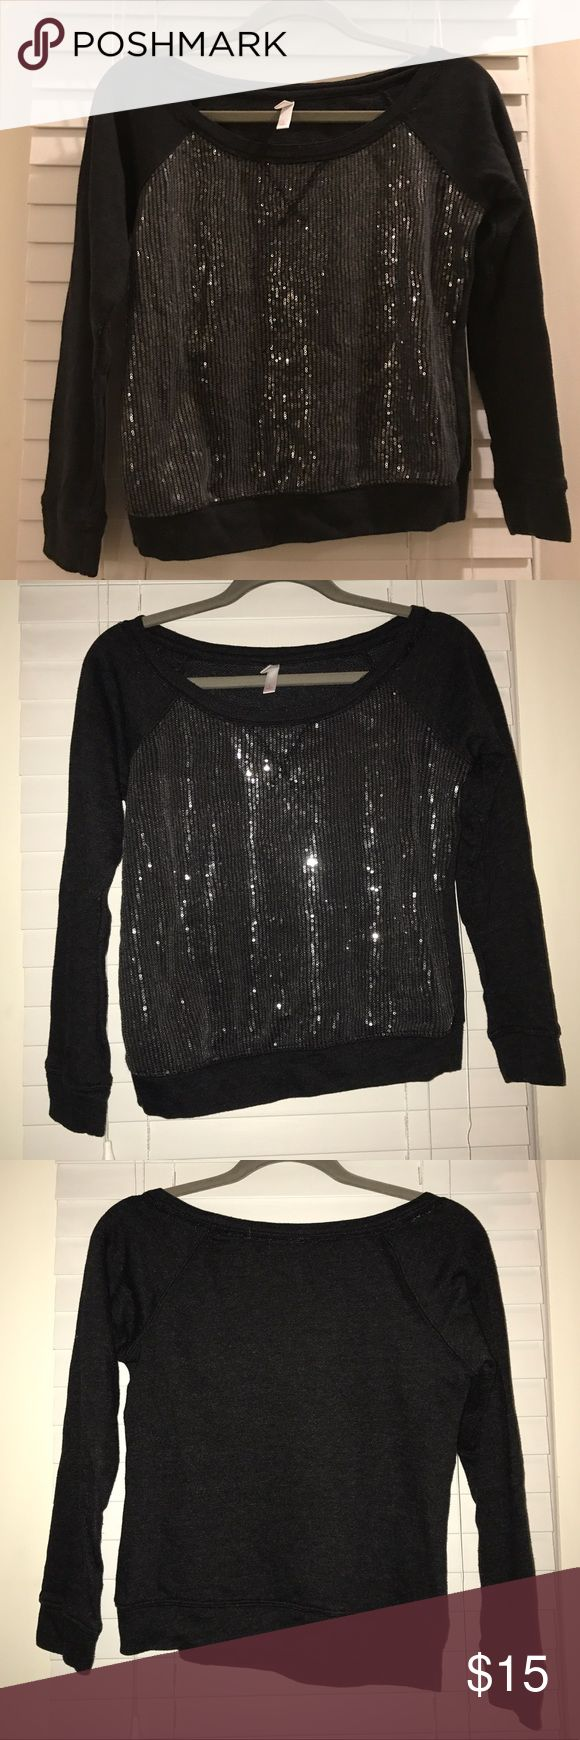 "Xhilaration Black Sweat Shirt with Gray Sequins S Xhilaration Black Sweat Shirt with Gray Sequins, size small. Gently used, maybe worn once, excellent condition. Style is somewhat cropped, but not all the way like the popular ""crop top"".  Fun shirt to wear with shorts on a cool summer night or perfect for lounge wear! *Reasonable offers greatly welcomed and seriously considered.  xhilaration Tops Sweatshirts & Hoodies"